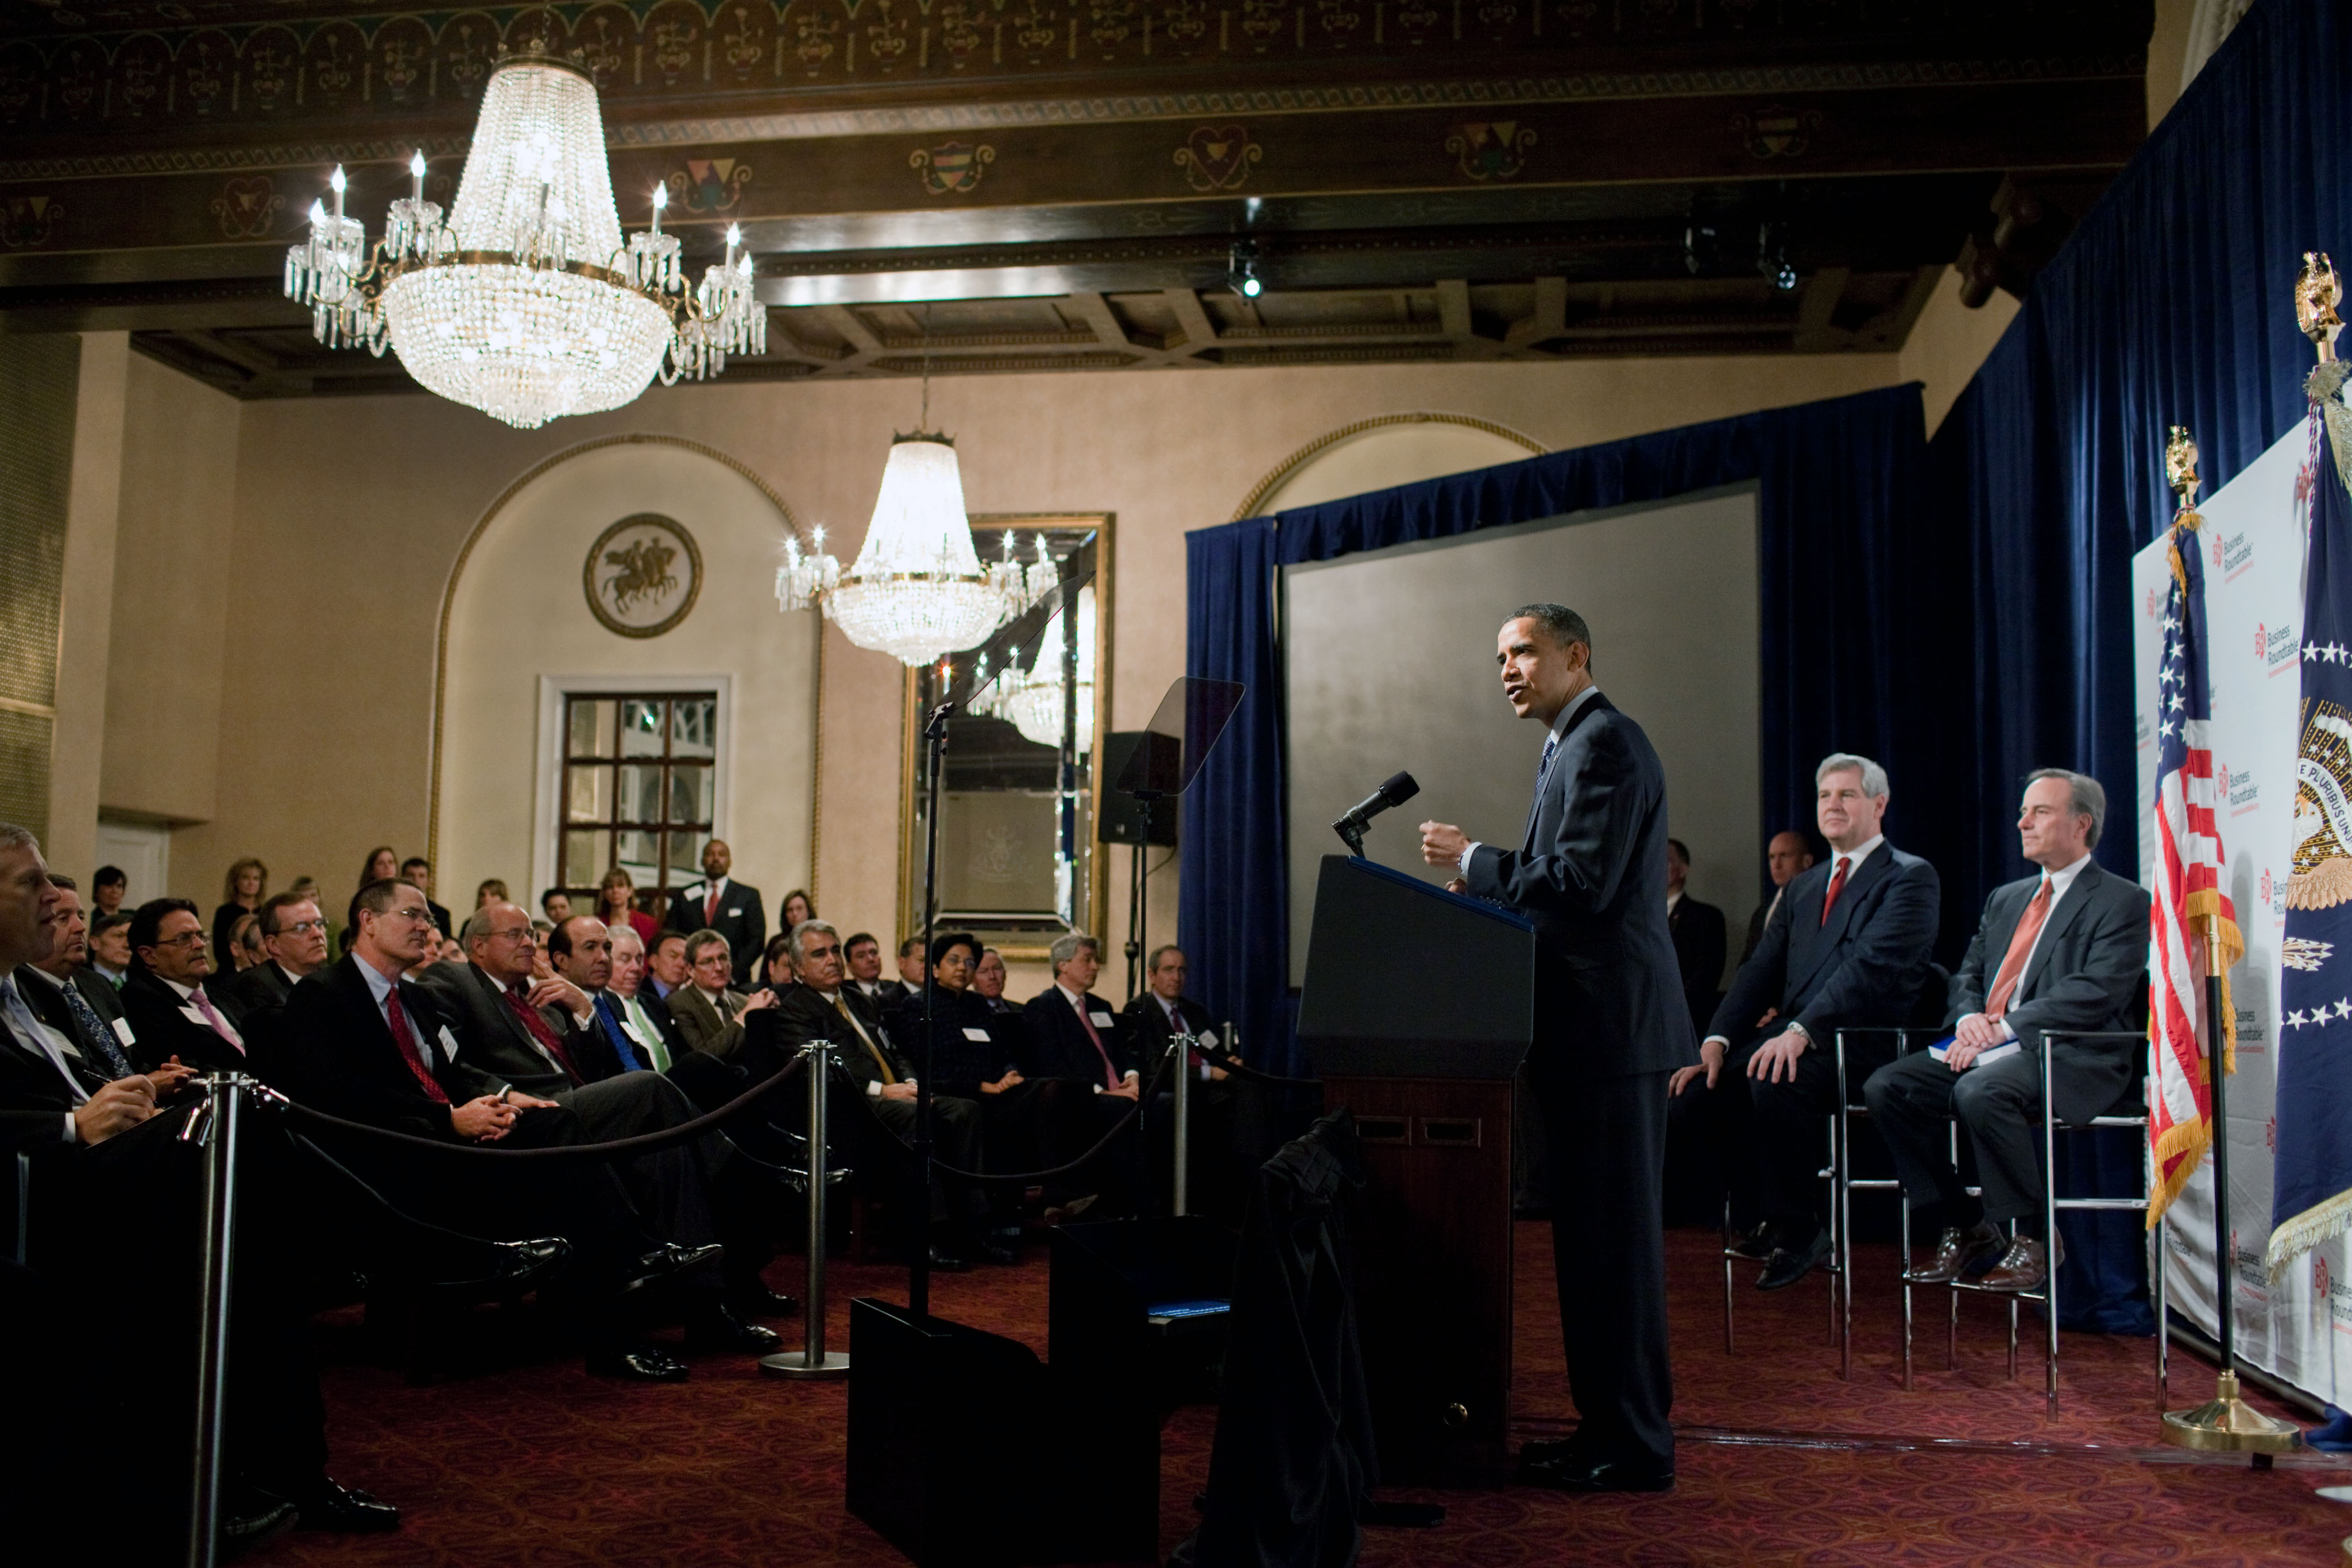 President Obama at Business Roundtable 02.24